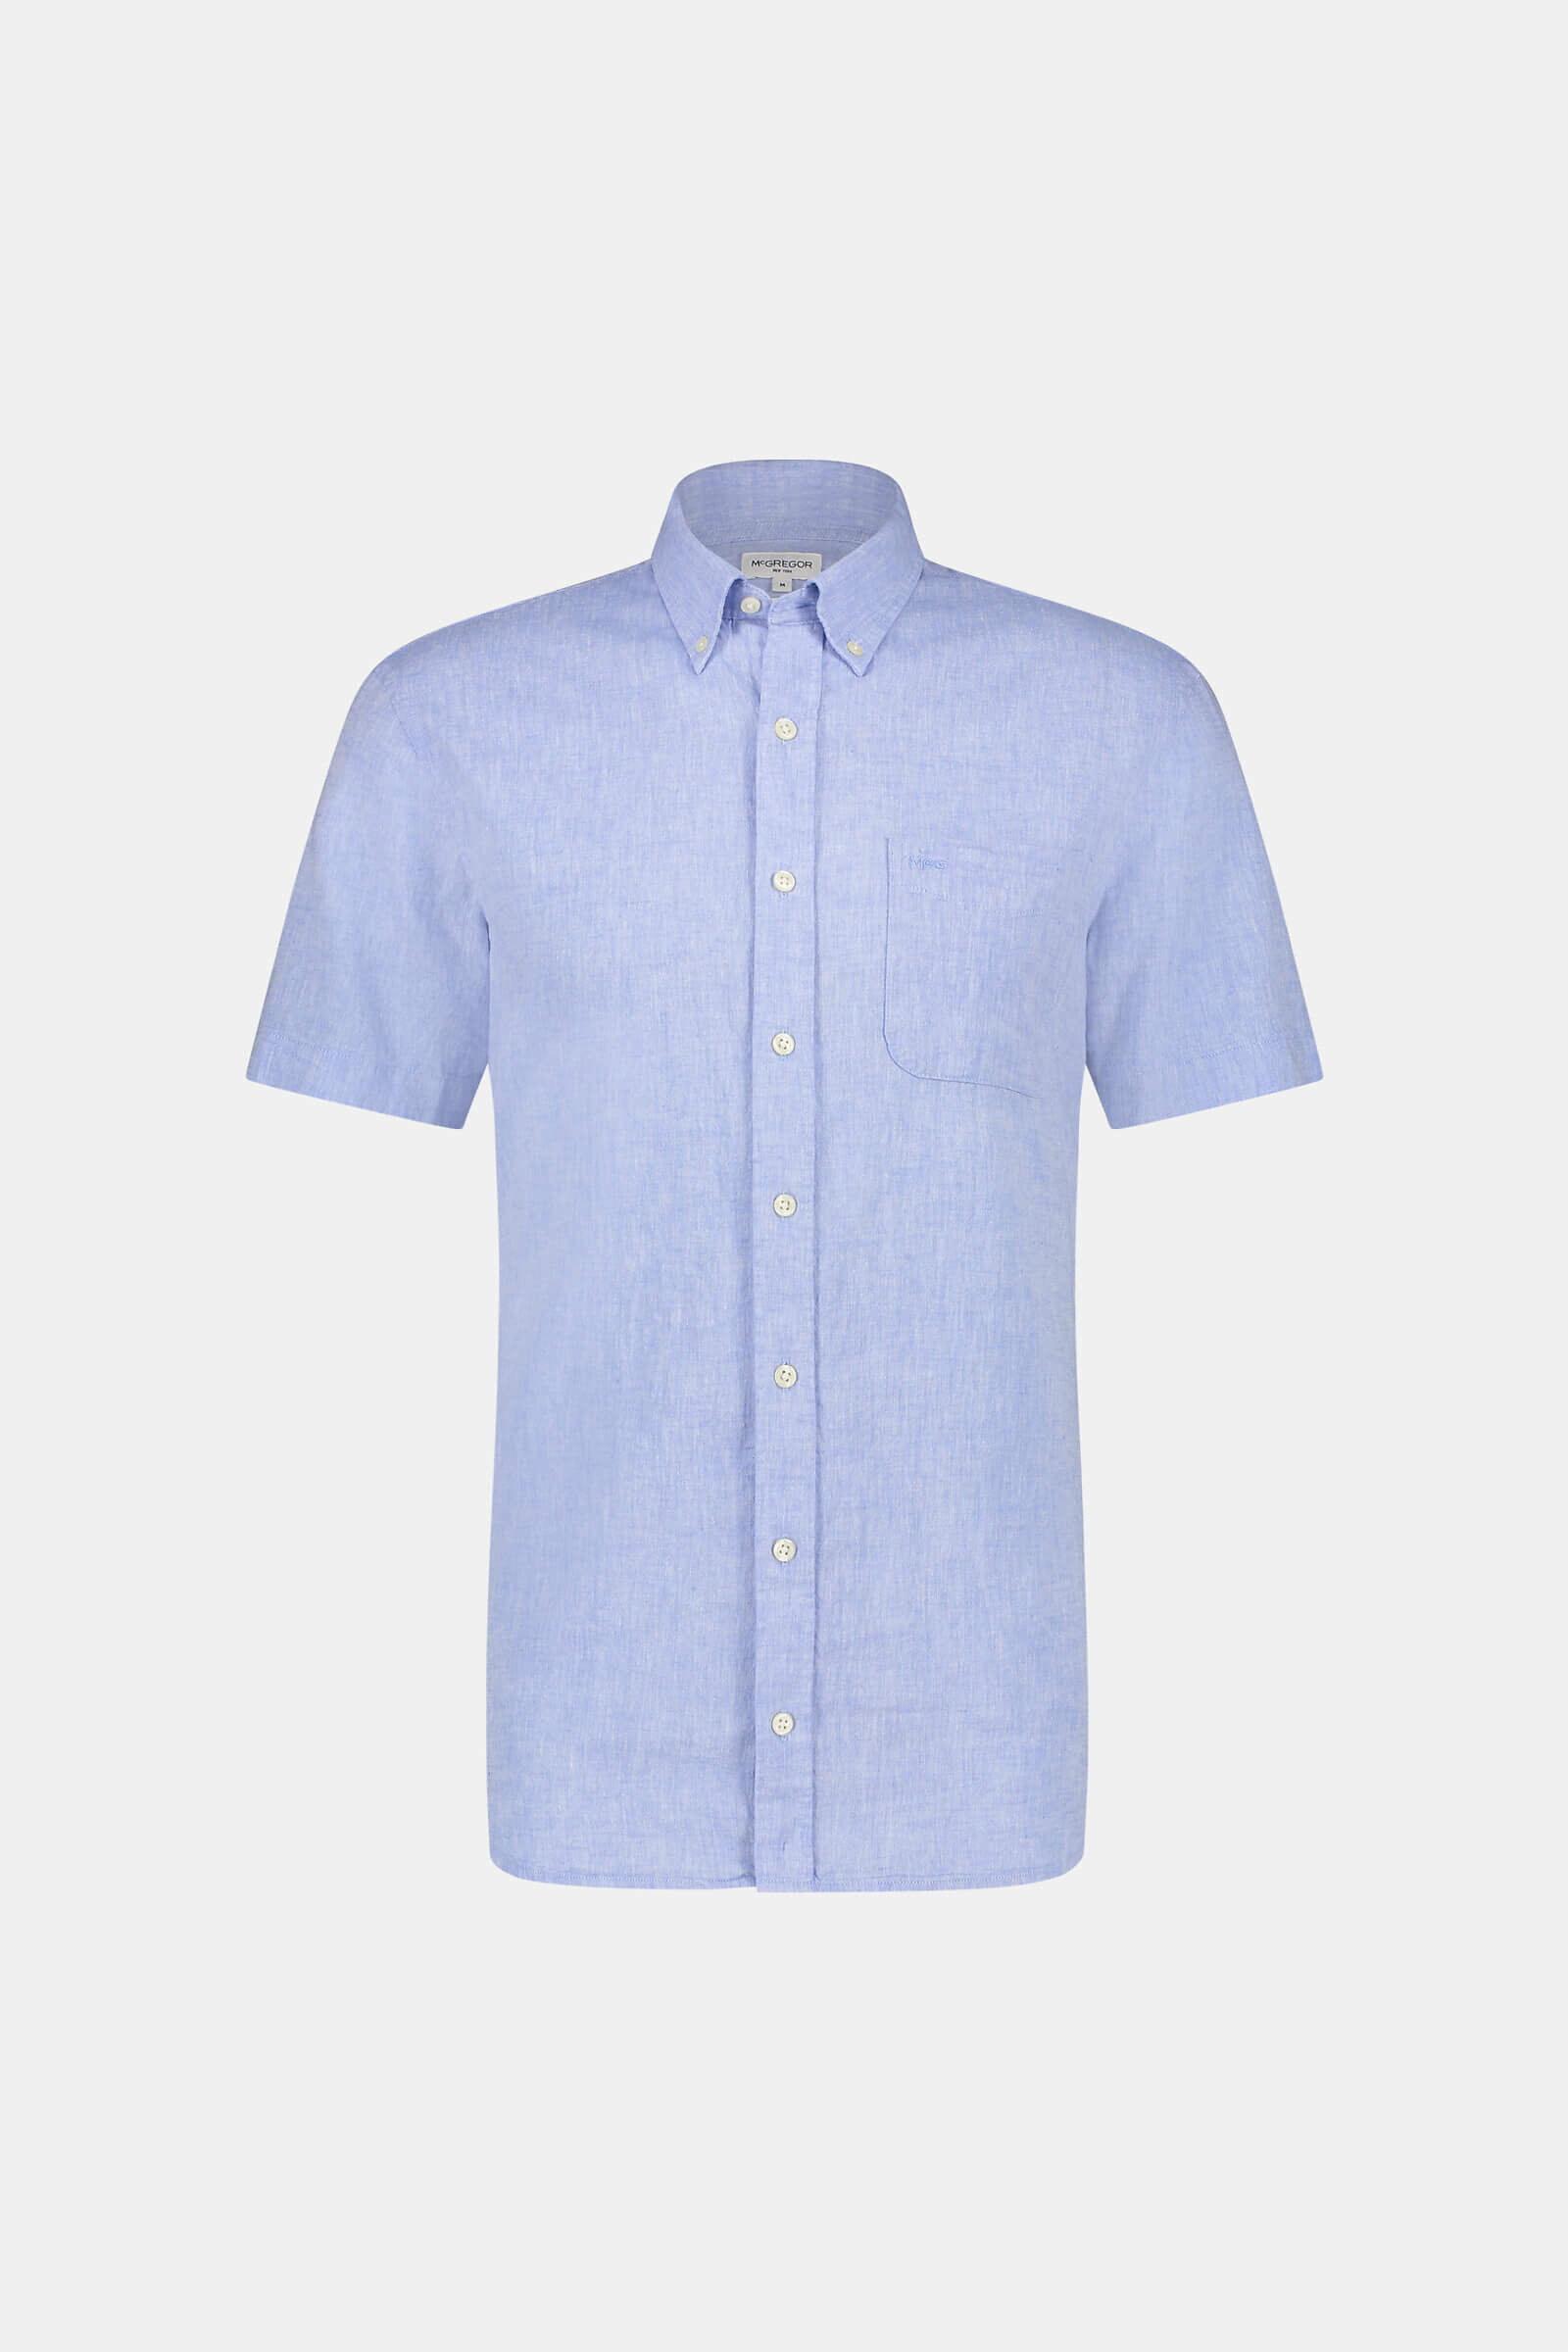 Regular Fit short-sleeved shirt in cotton linen